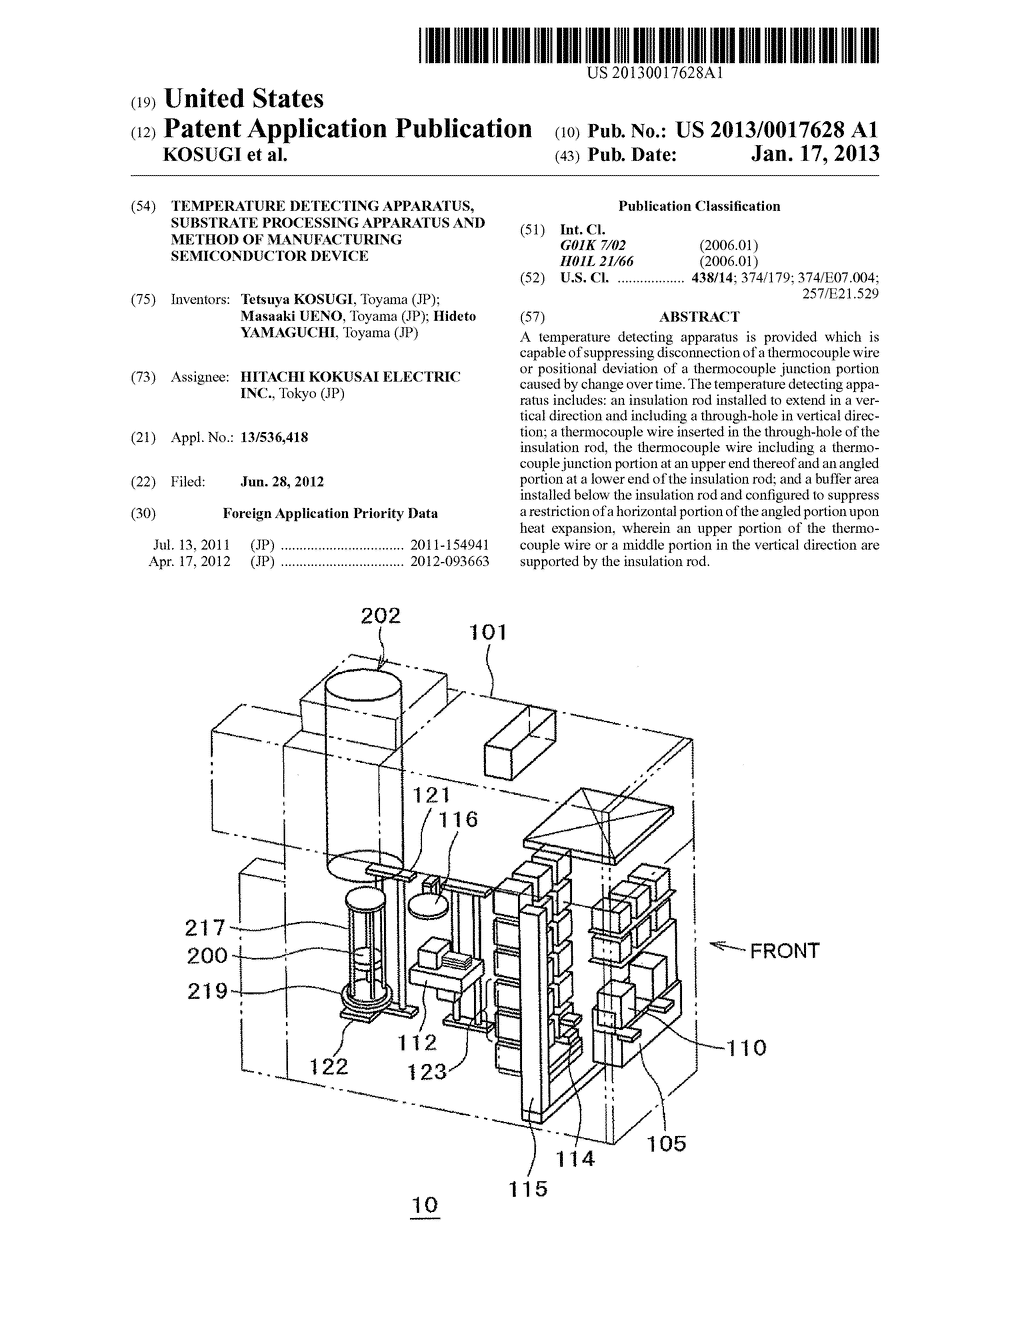 TEMPERATURE DETECTING APPARATUS, SUBSTRATE PROCESSING APPARATUS AND METHOD     OF MANUFACTURING SEMICONDUCTOR DEVICEAANM KOSUGI; TetsuyaAACI ToyamaAACO JPAAGP KOSUGI; Tetsuya Toyama JPAANM UENO; MasaakiAACI ToyamaAACO JPAAGP UENO; Masaaki Toyama JPAANM YAMAGUCHI; HidetoAACI ToyamaAACO JPAAGP YAMAGUCHI; Hideto Toyama JP - diagram, schematic, and image 01